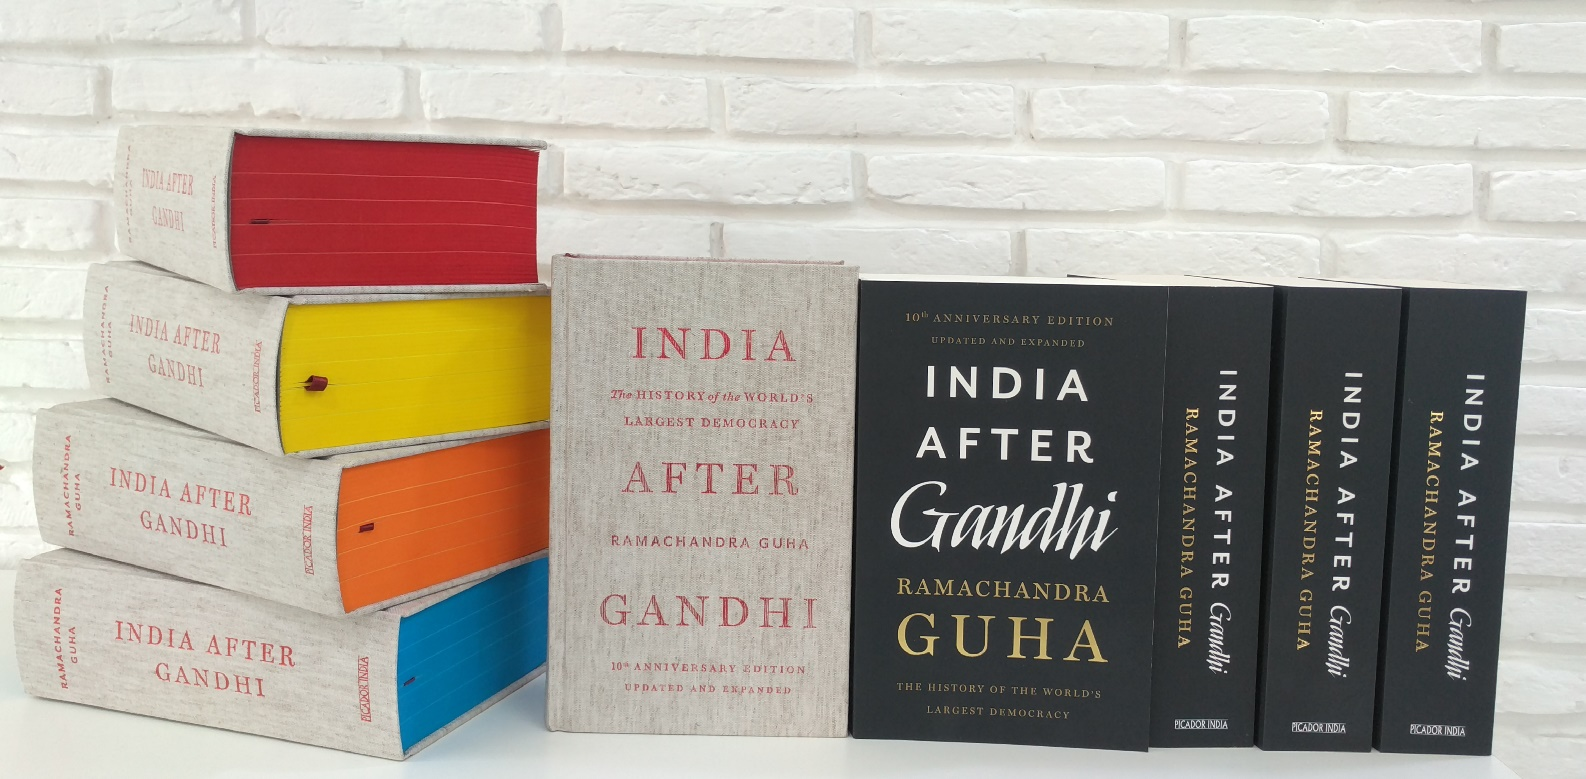 Anniversary Edition: India After Gandhi